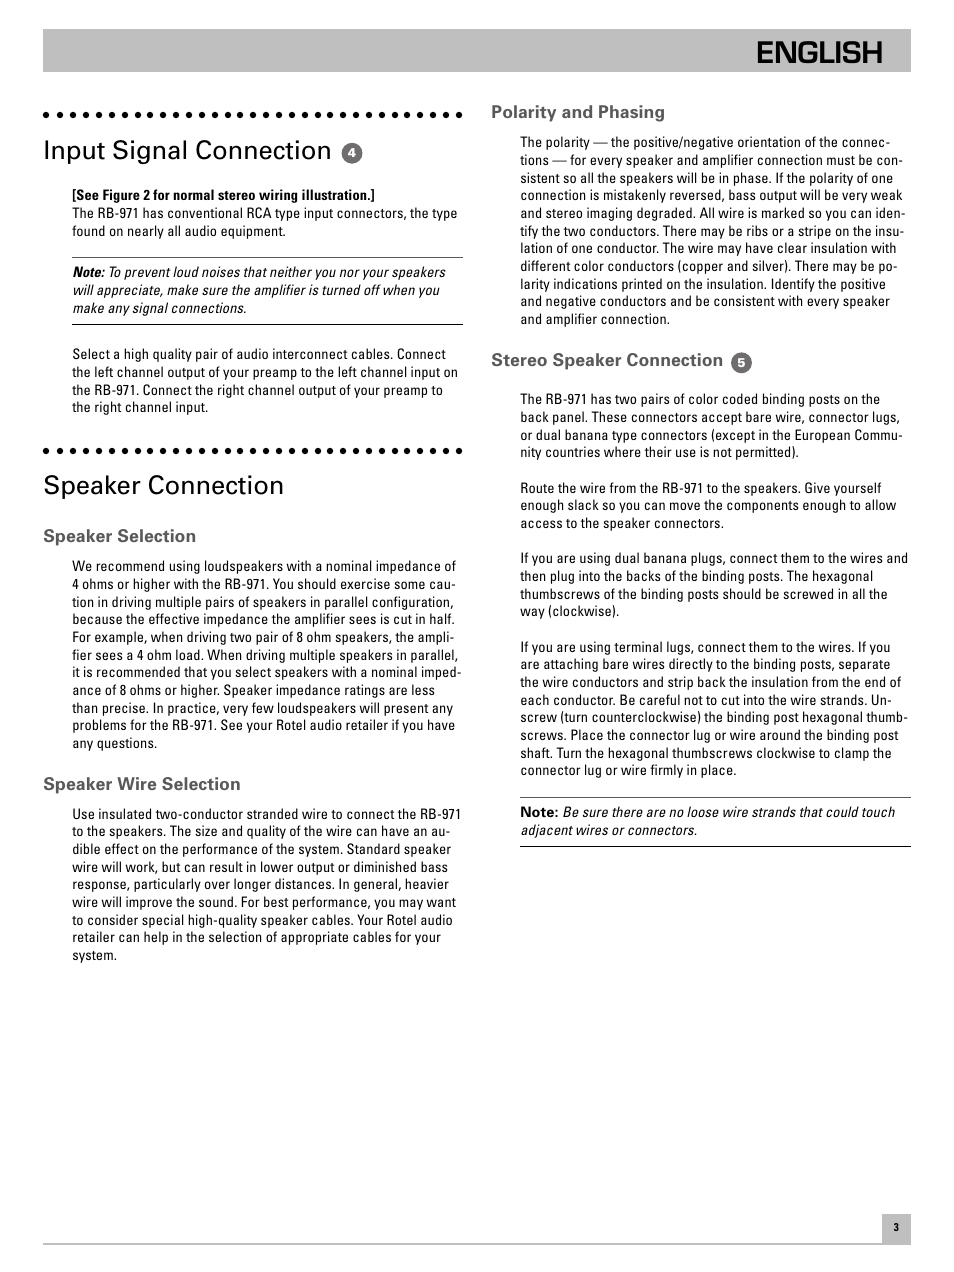 medium resolution of english input signal connection speaker connection rotel rb 971 user manual page 7 11